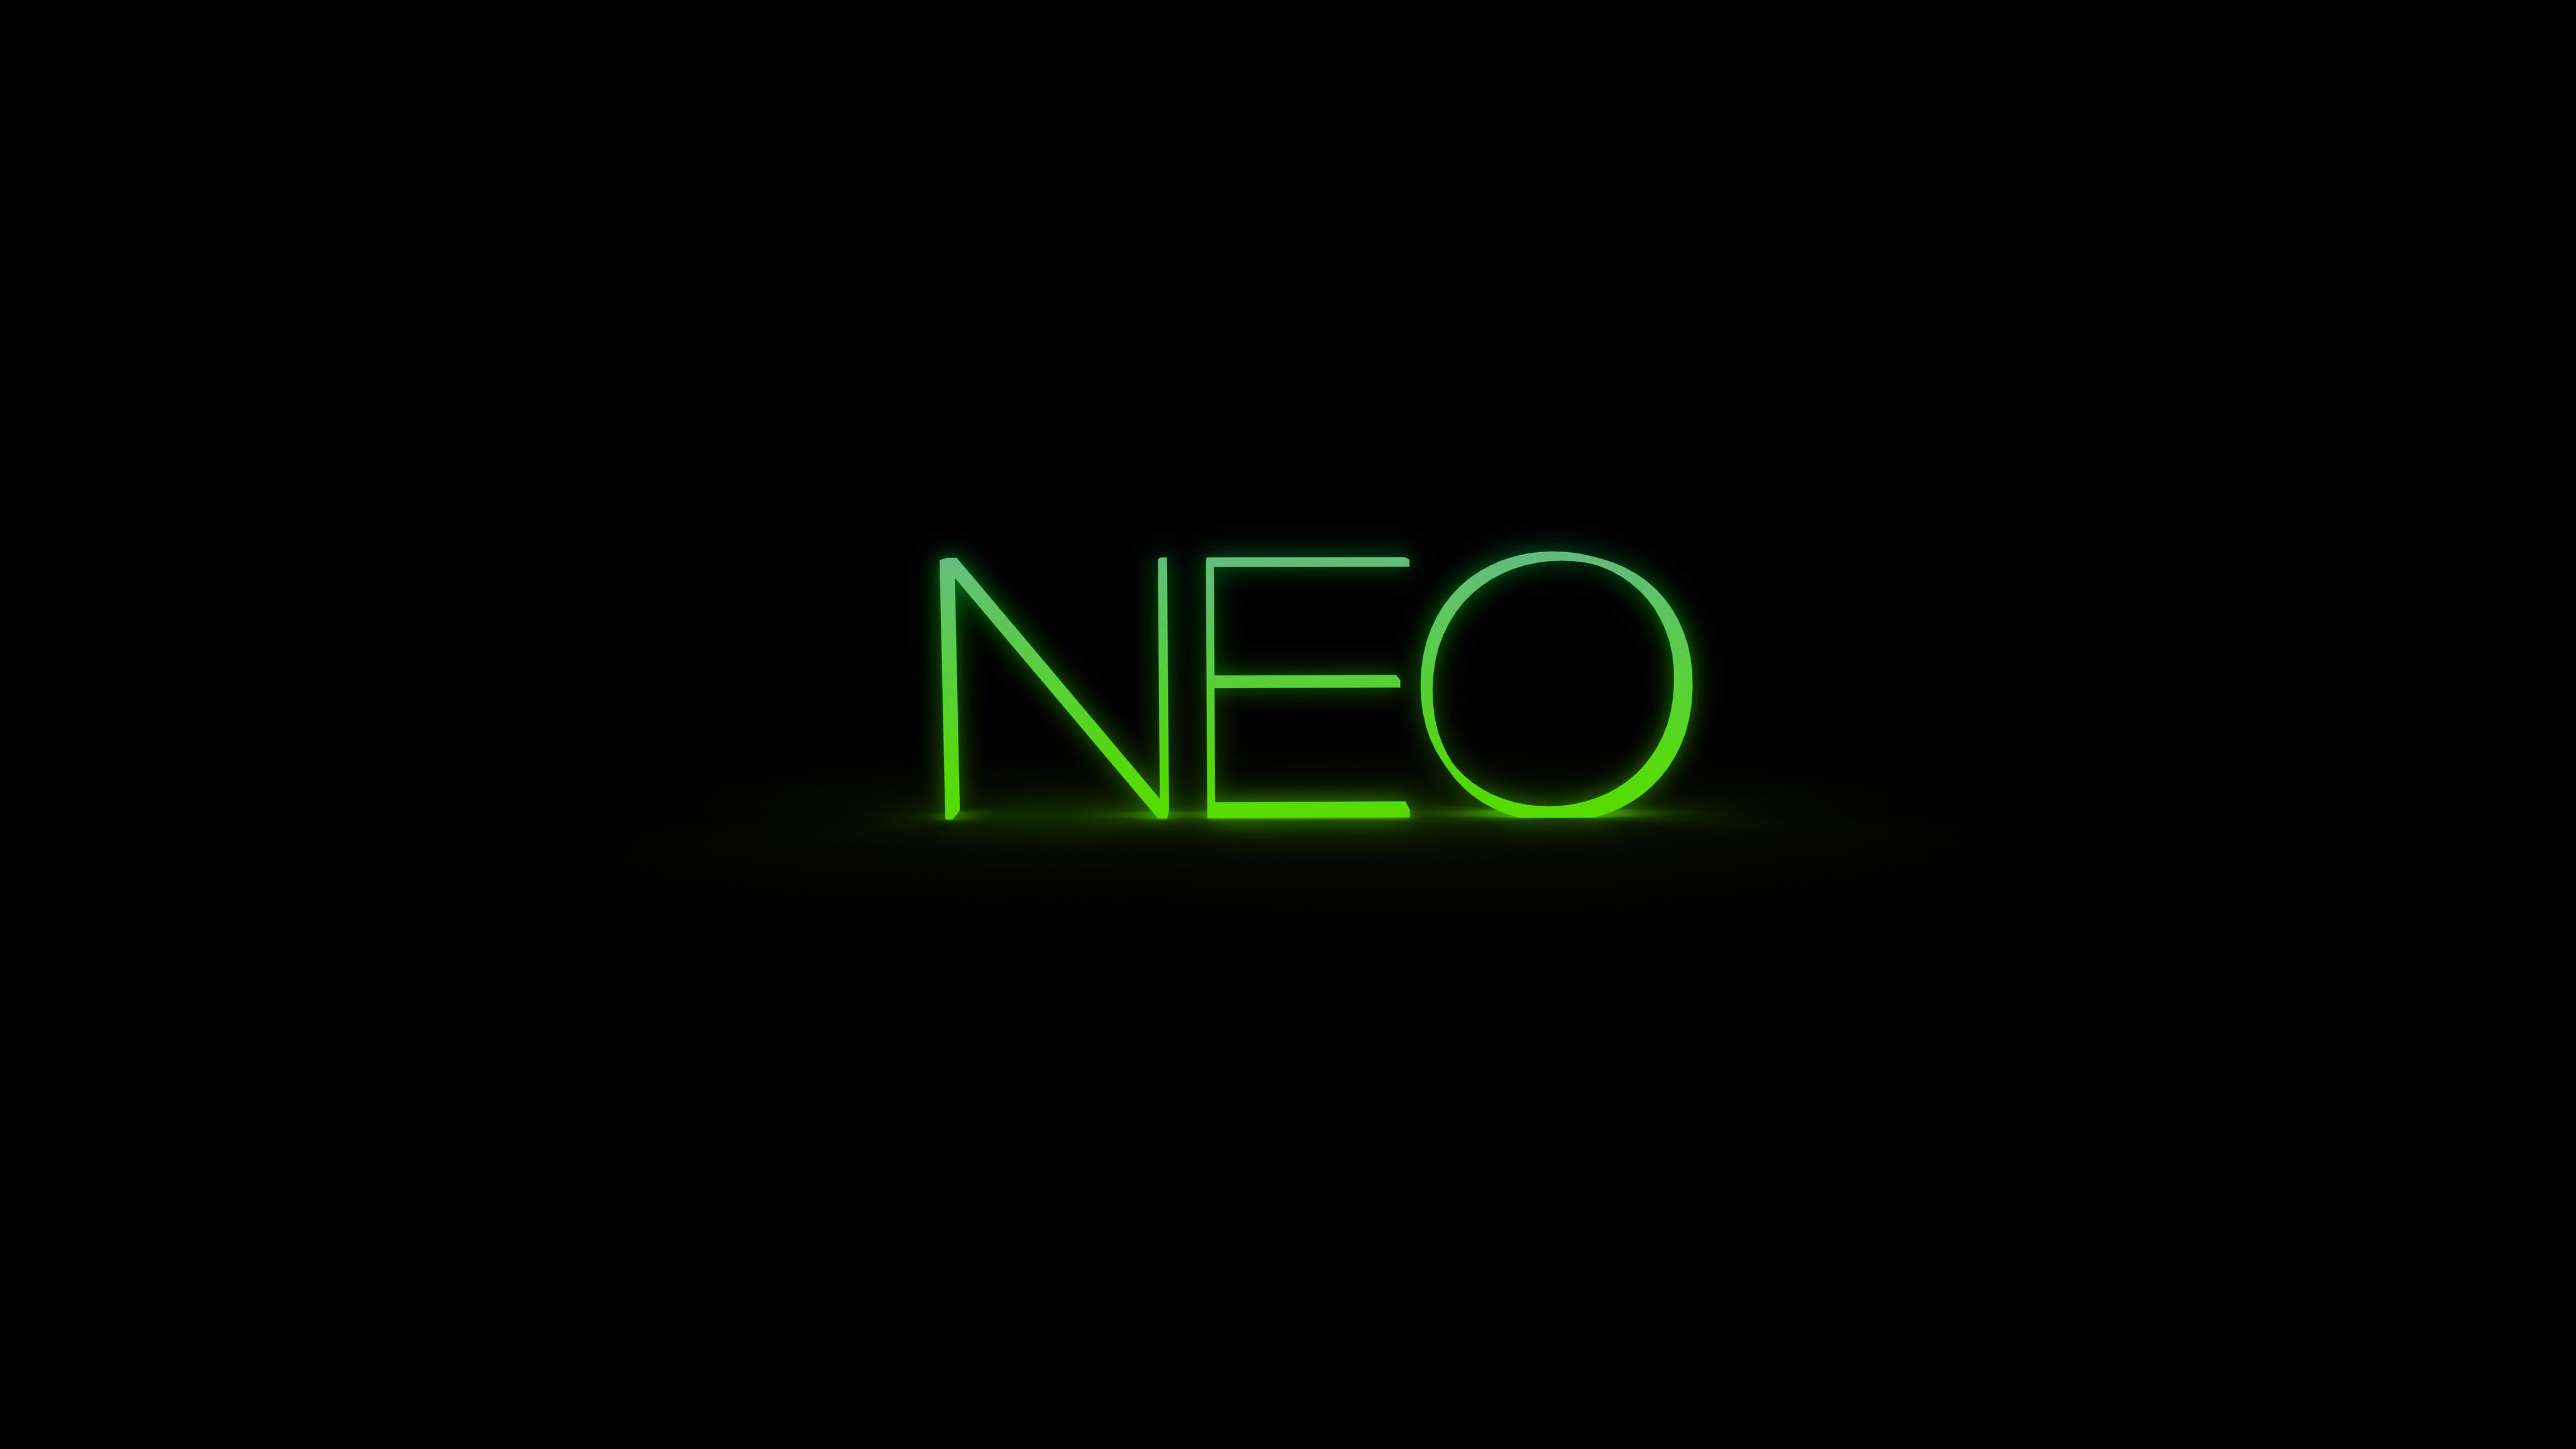 Neo Wallpapers Wallpaper Cave